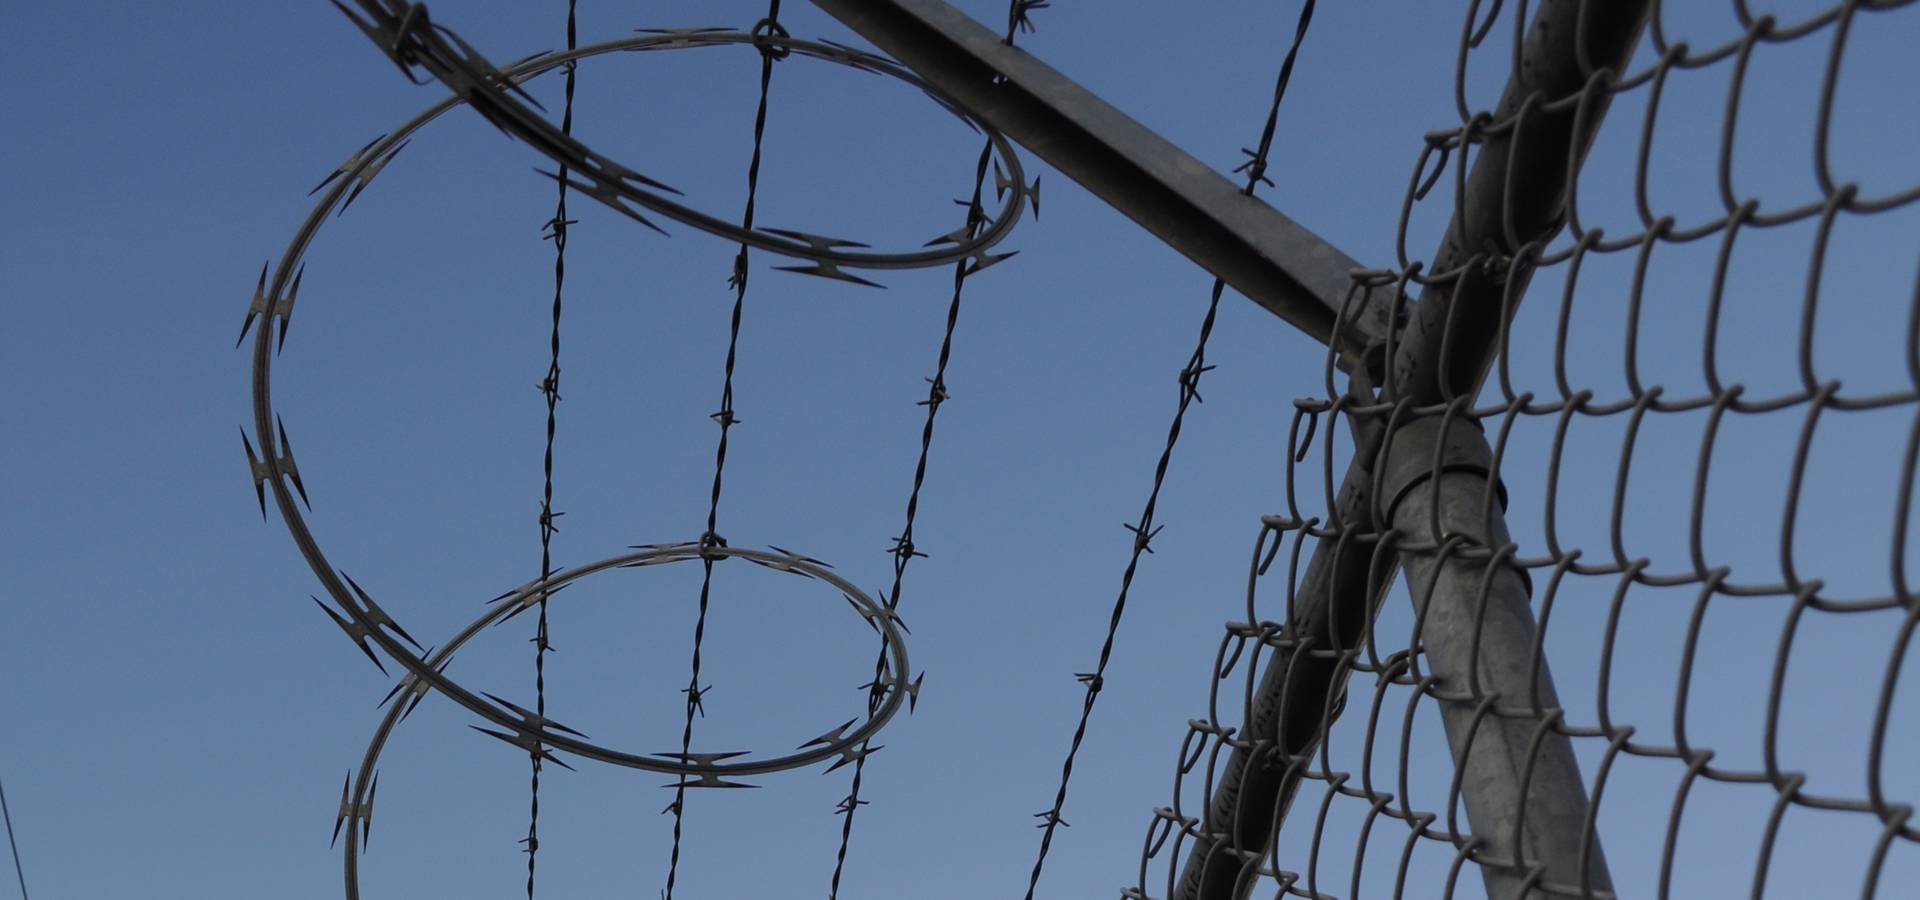 Razor Concertina Wire Supplied to Enhance Security